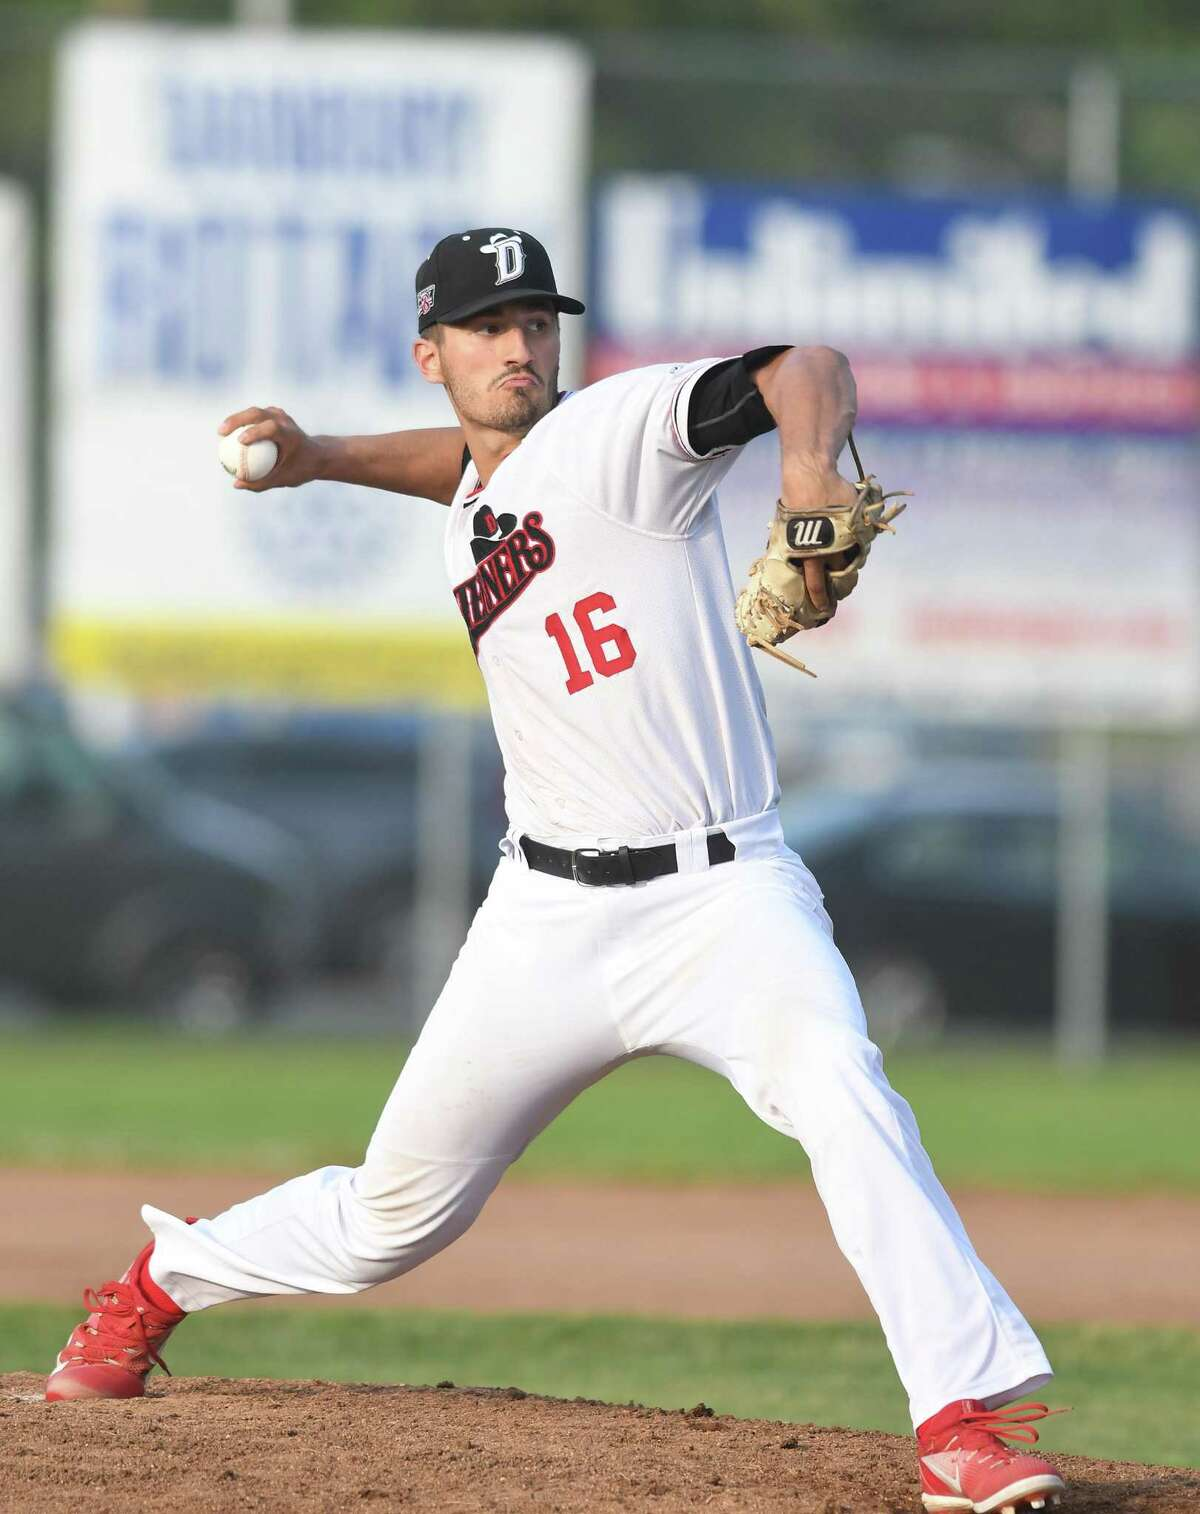 Danbury Westerner pitcher Kevin Stone, of Stamford, pitches in his game against the Mystic Schooners in Danbury, June 21, 2018.